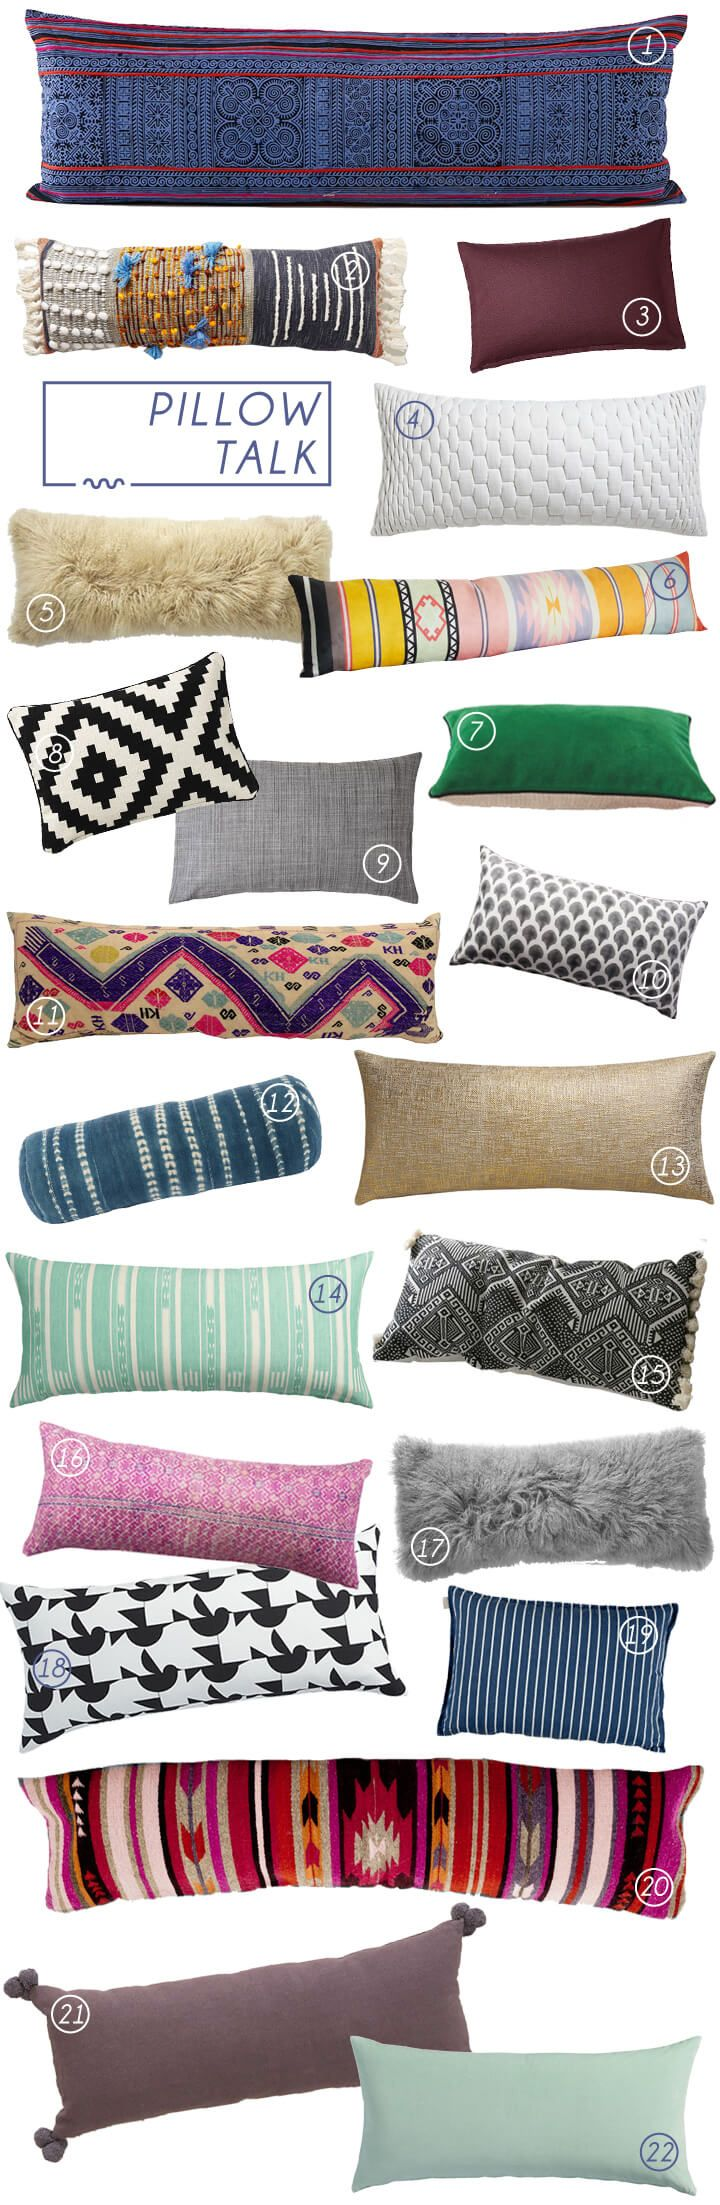 Best 25+ Decorative bed pillows ideas on Pinterest Cozy bedroom decor, White bedding and ...